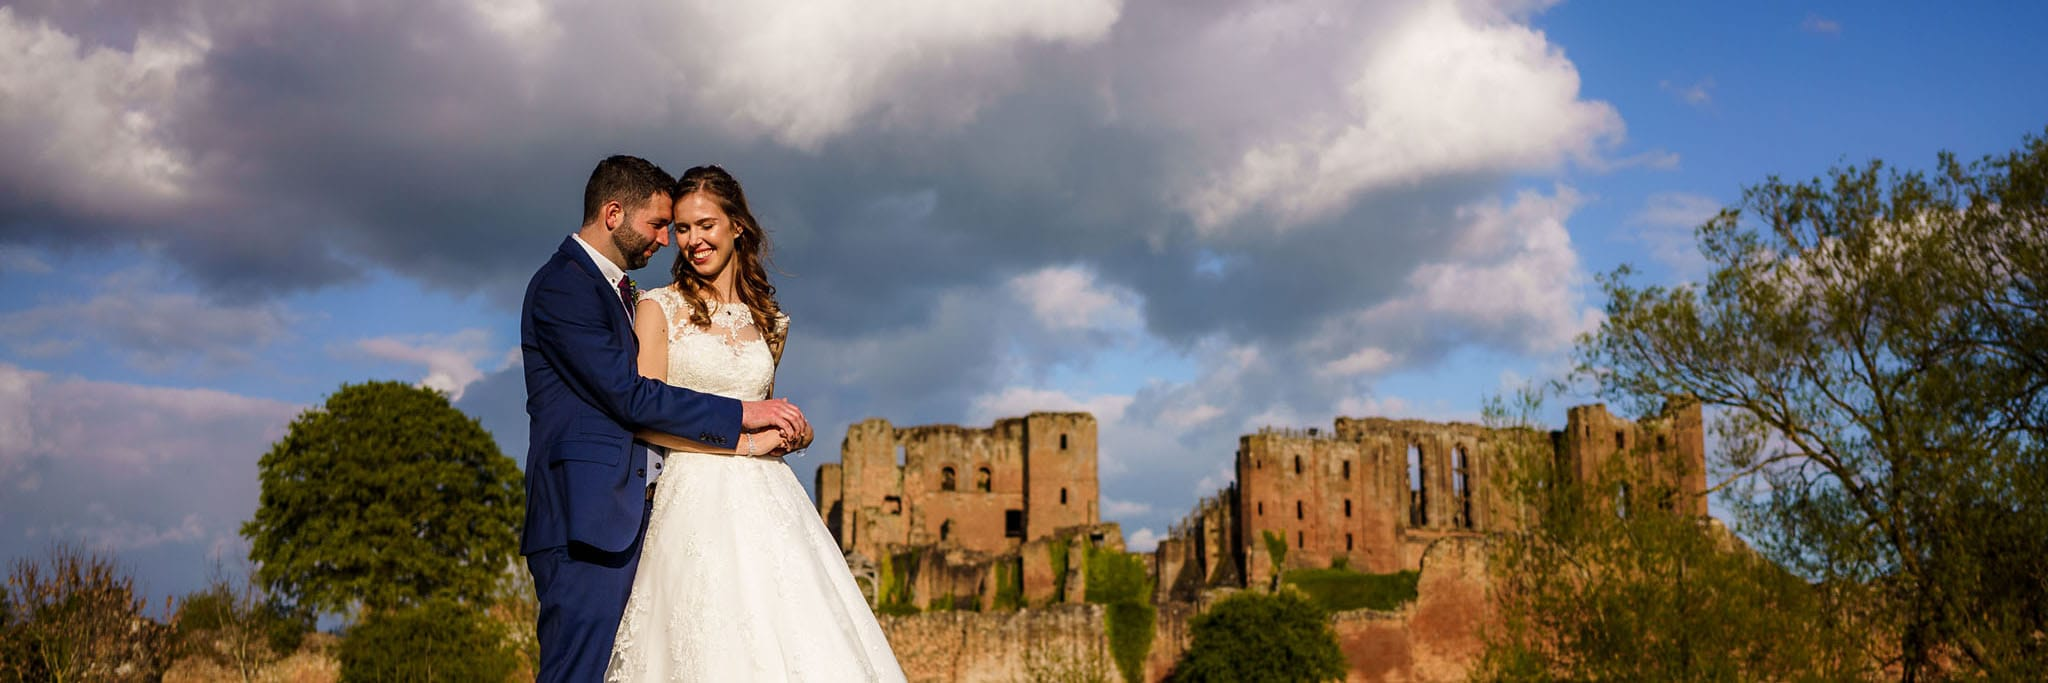 sunlit portrait of the happy couple in front of Kenilwroth Castle